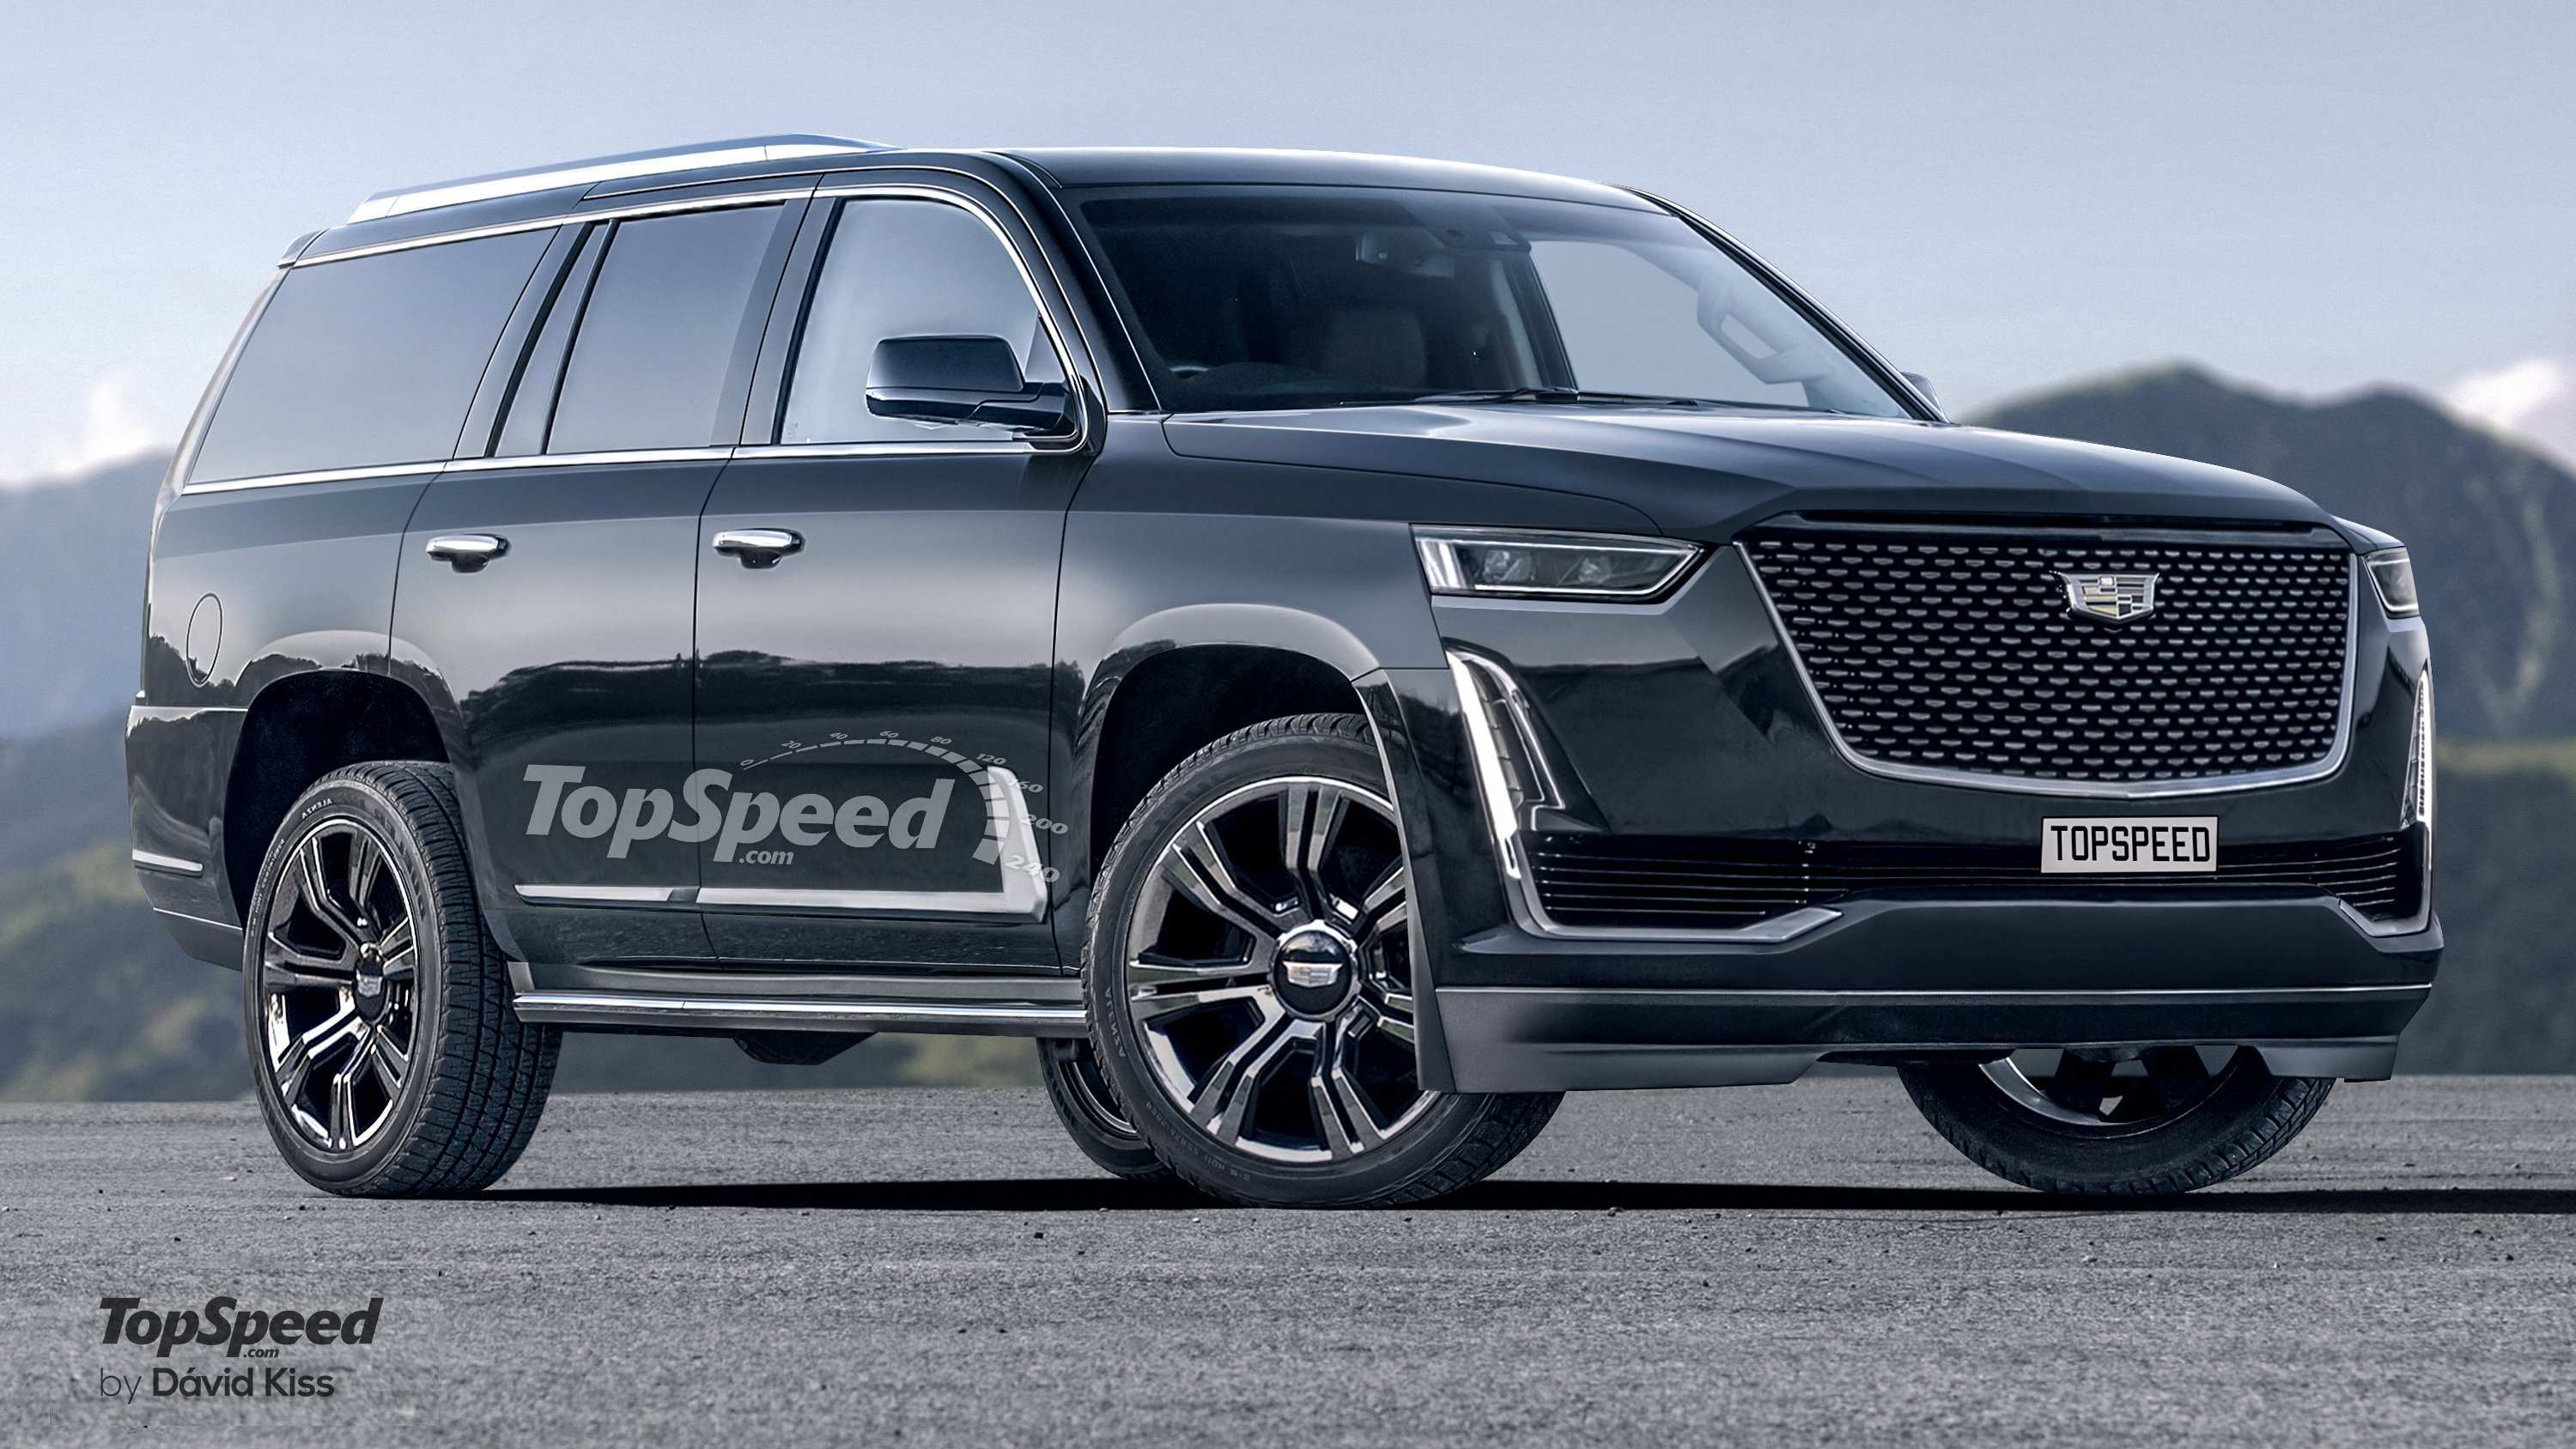 73 The Cadillac Escalade 2020 Model Review And Release Date